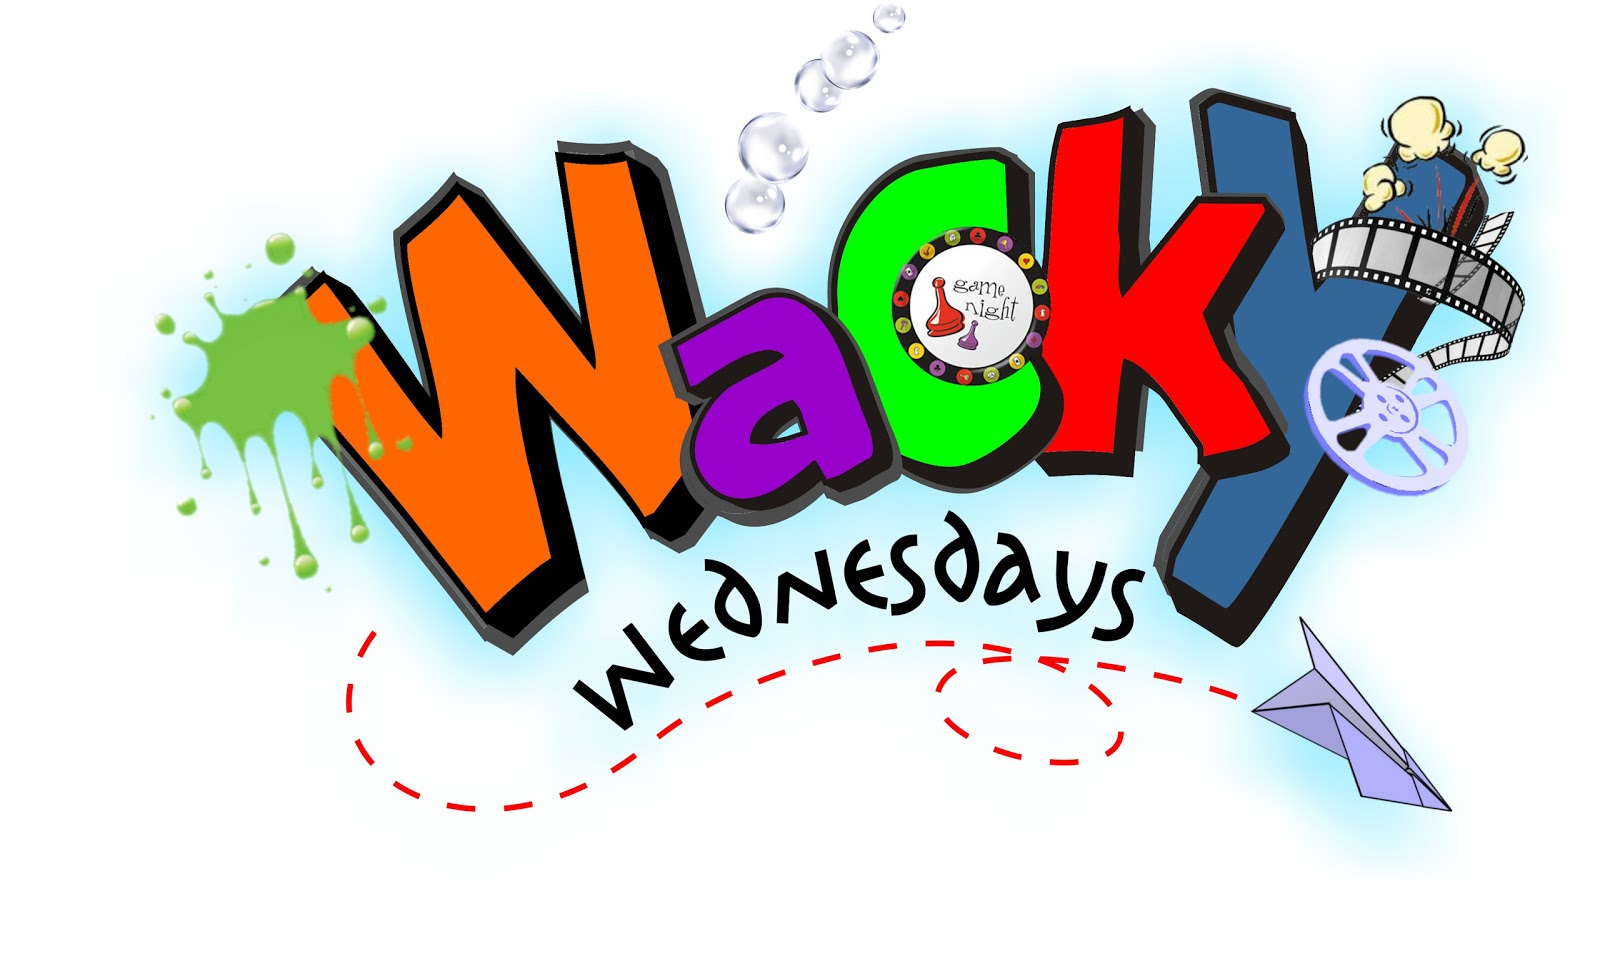 Wacky Wednesday Dr. Seuss Wacky Wednesday Quotes...